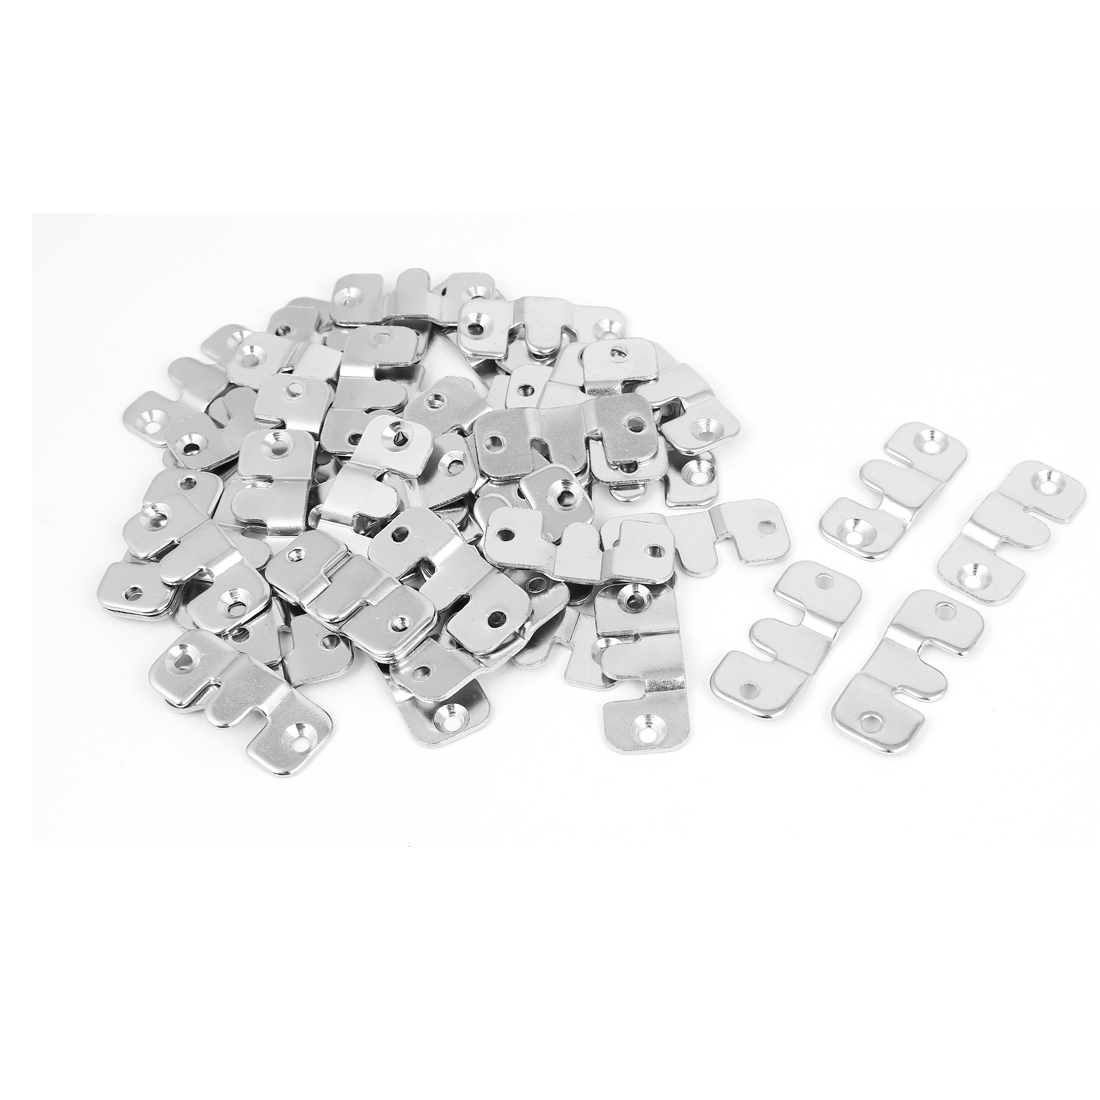 Furniture Sofa Photo Frame Metal Interlock Bracket Connector Hook 50pcs